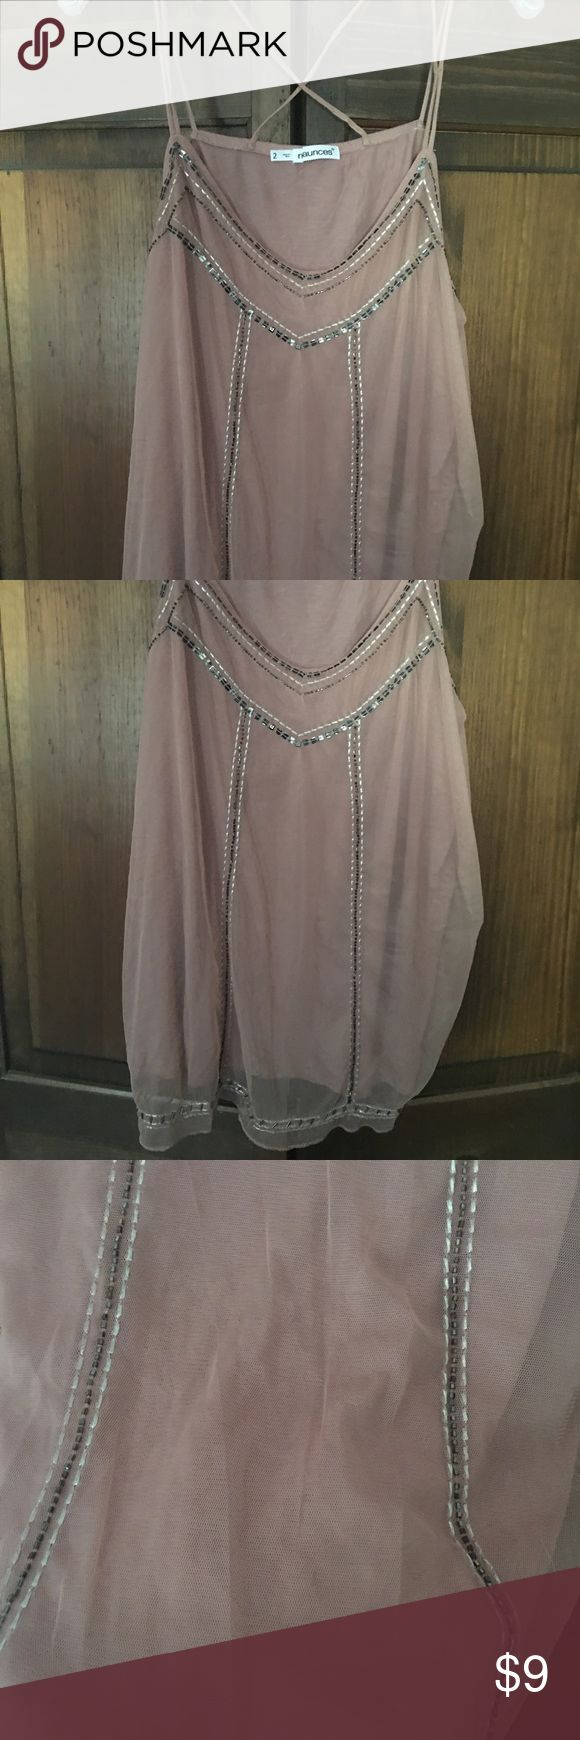 Maurice's pale pink cami top size 2 plus size Worn once! Comes from clean non smoking home! Maurices Tops Camisoles